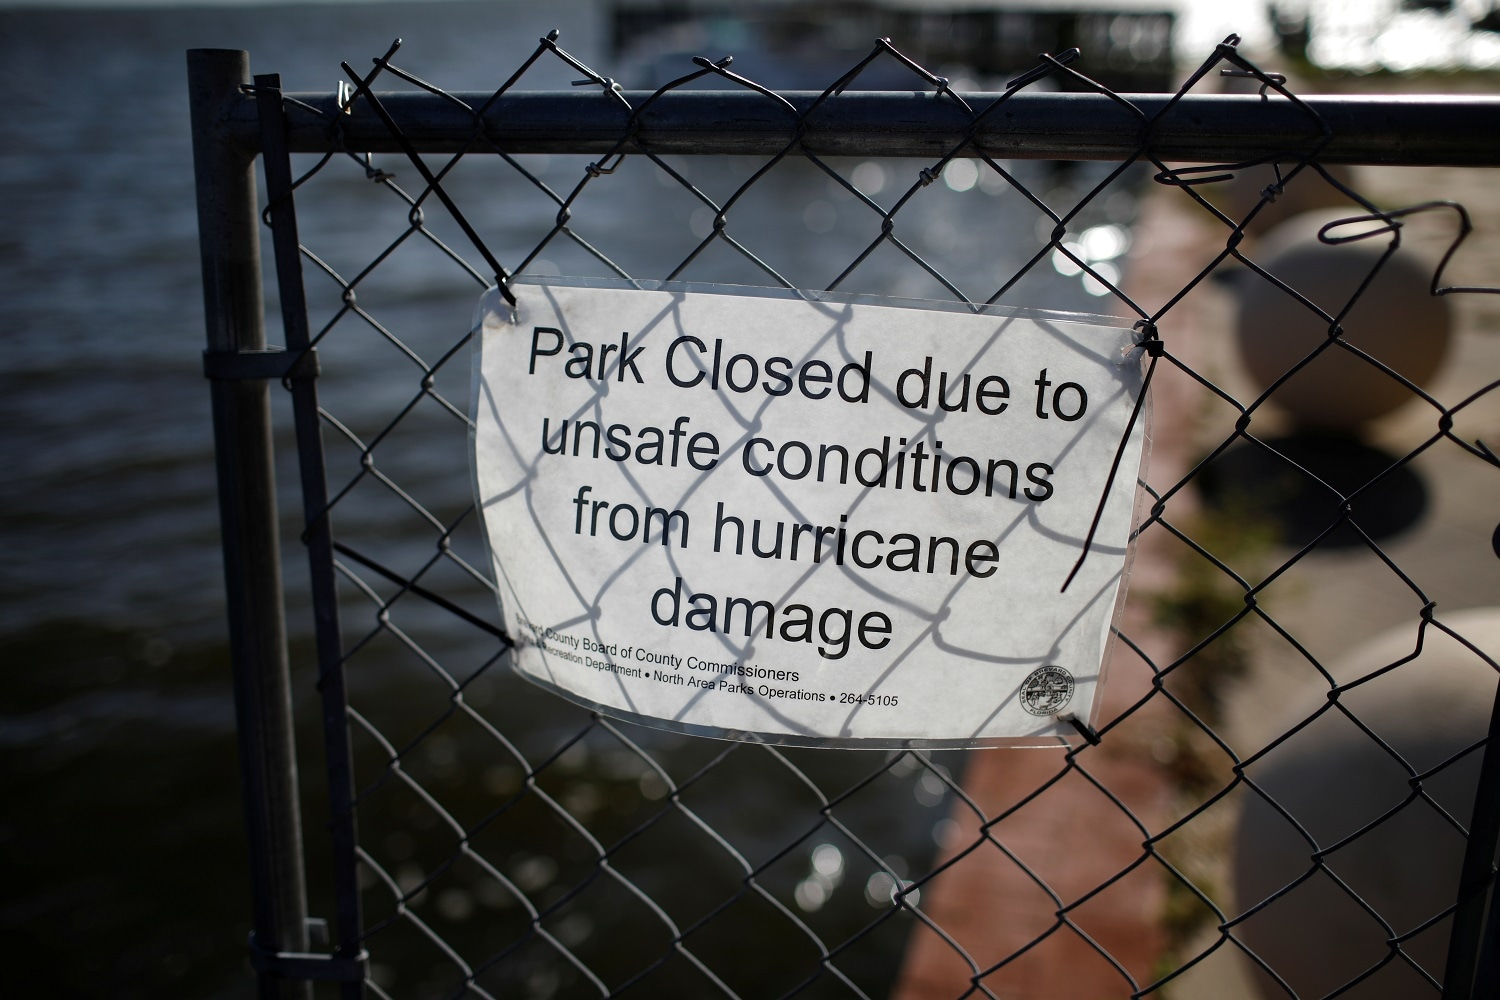 A sign is seen at Veterans Memorial Park ahead of the arrival of Hurricane Dorian in Titusville, Florida, U.S., September 1, 2019. REUTERS/Marco Bello